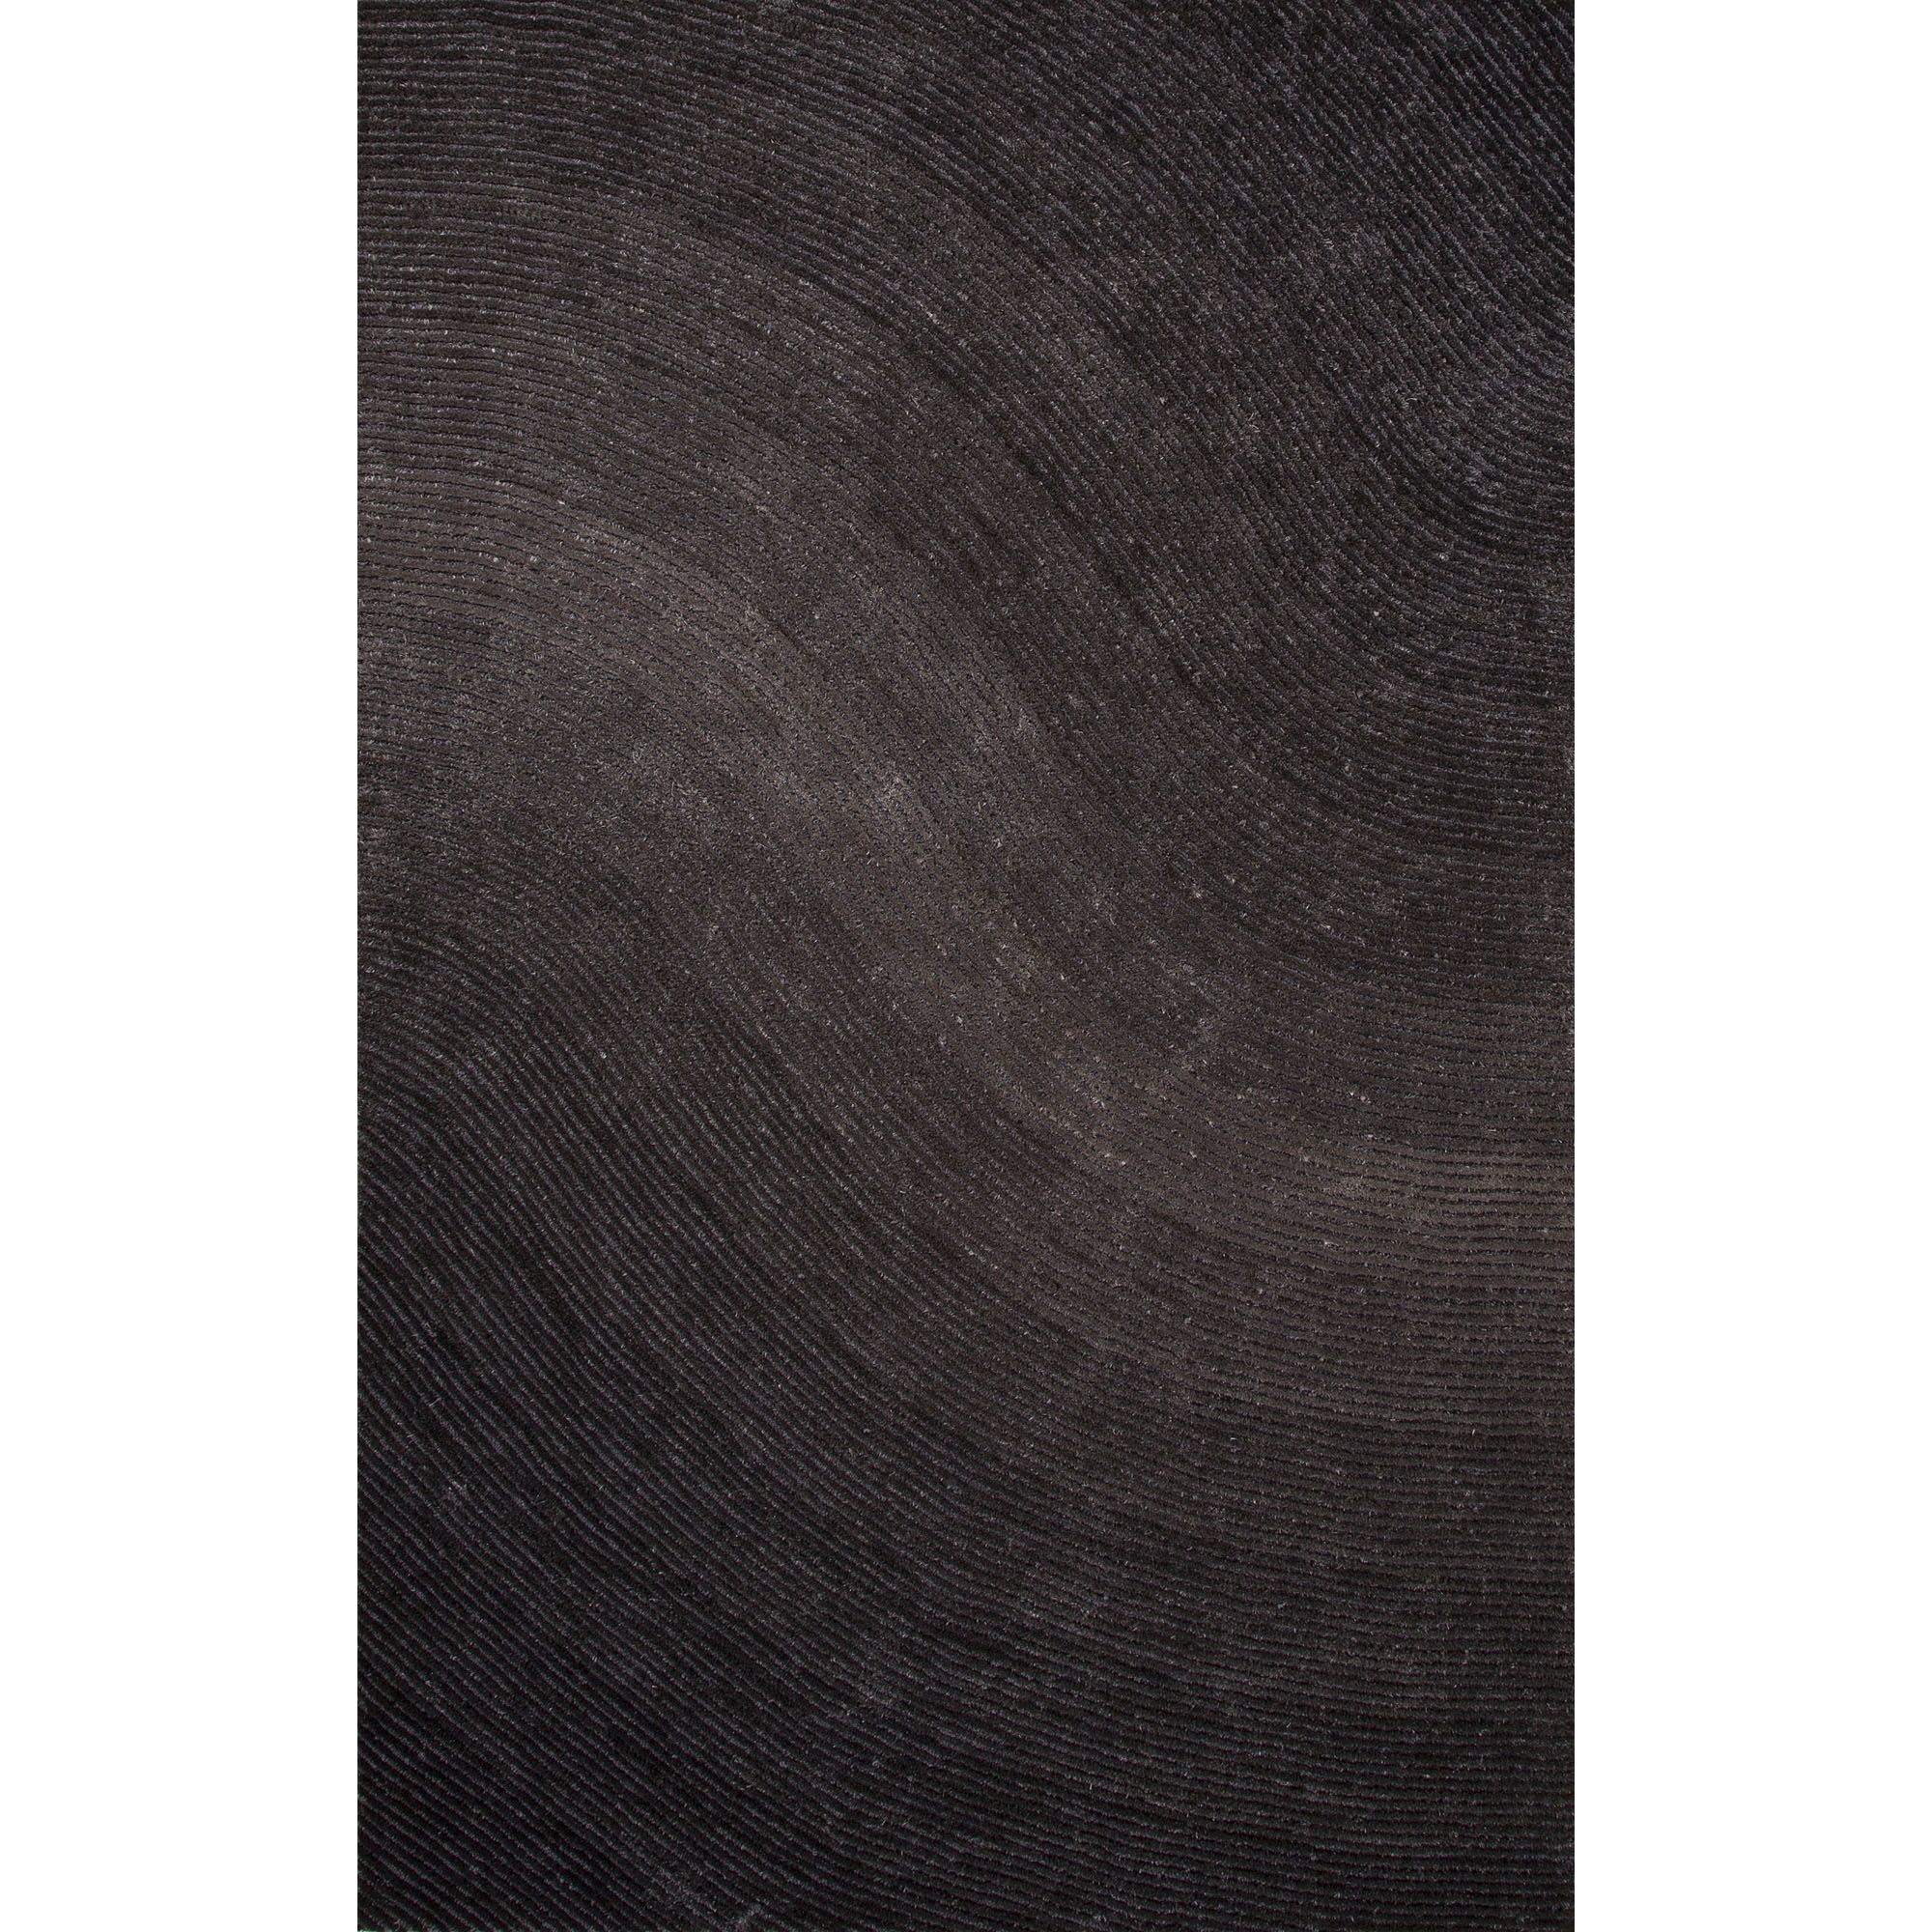 Domenick Polyester Shag Gray Area Rug Rug Size: Rectangle 7'6